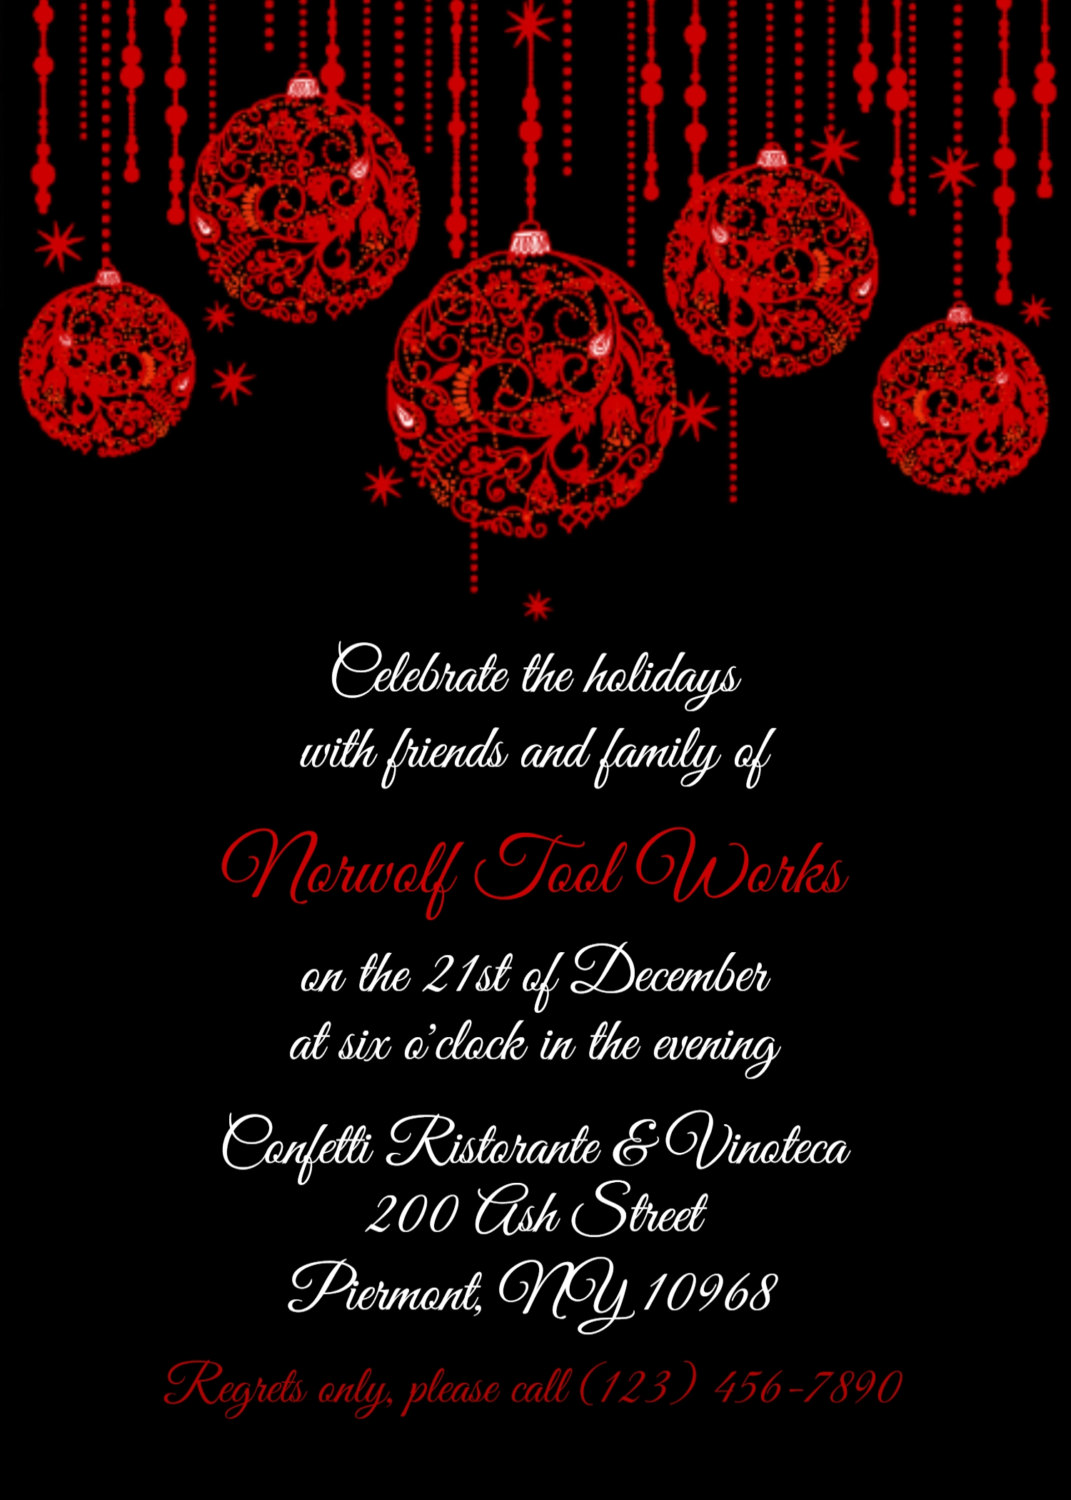 doc 700434 christmas office party invitation templates office invitation for holiday party mickey mouse invitations templates christmas office party invitation templates